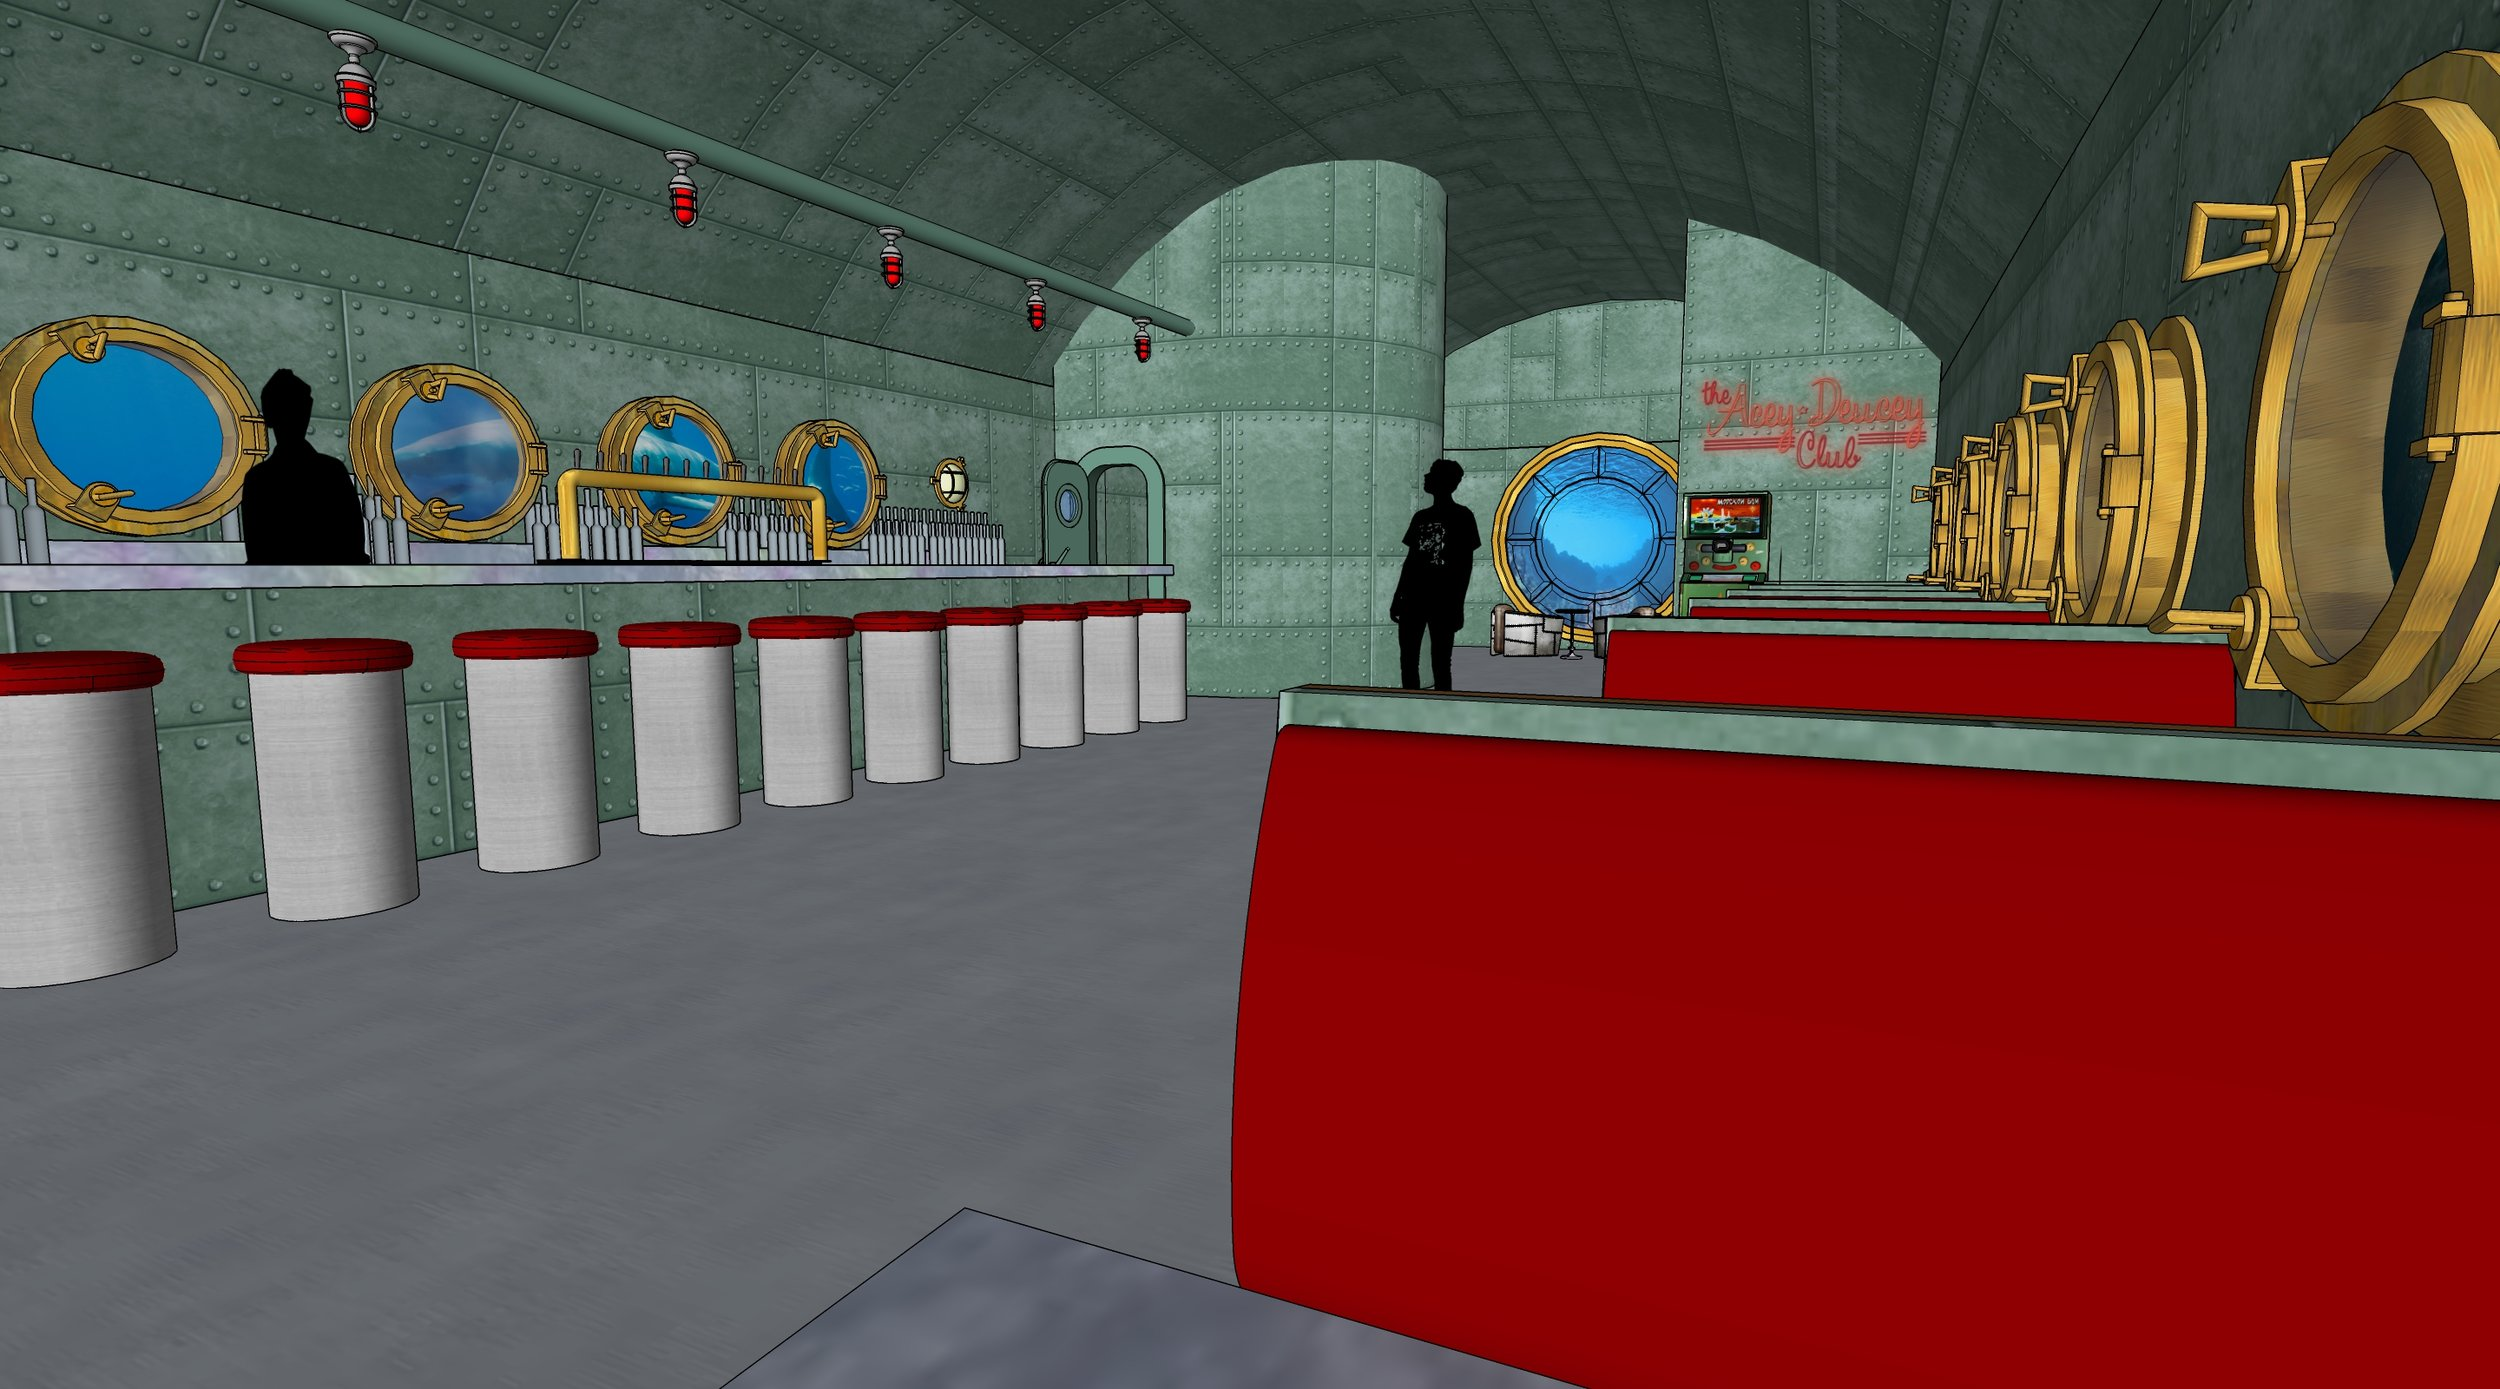 Submarine_Bar8_5.jpg